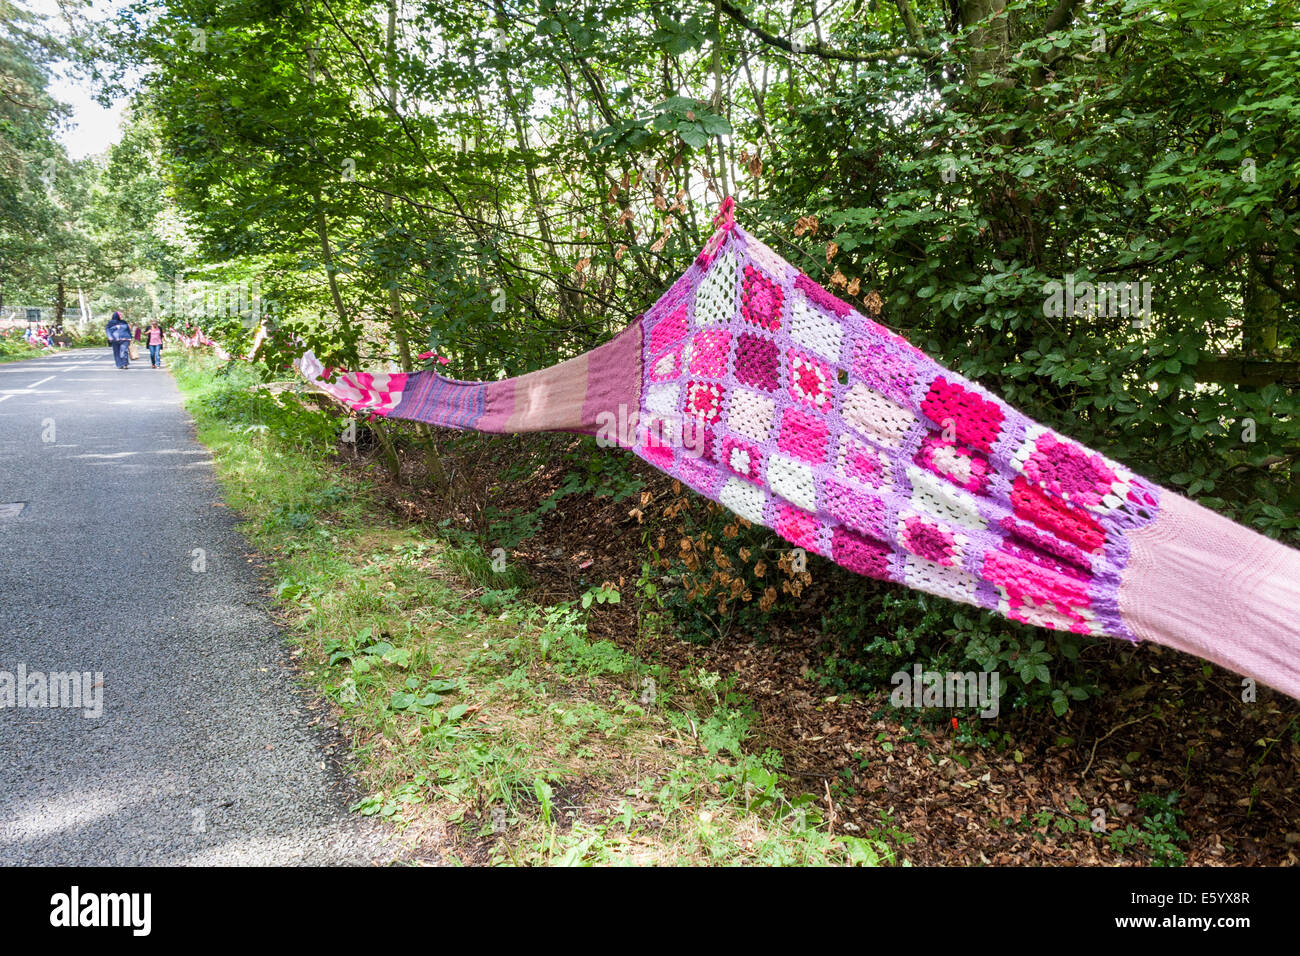 Aldermaston, Berkshire, England, GB, UK. 9th August 2014. A 7 mile (11km) long hand-knitted 'scarf' was - Stock Image